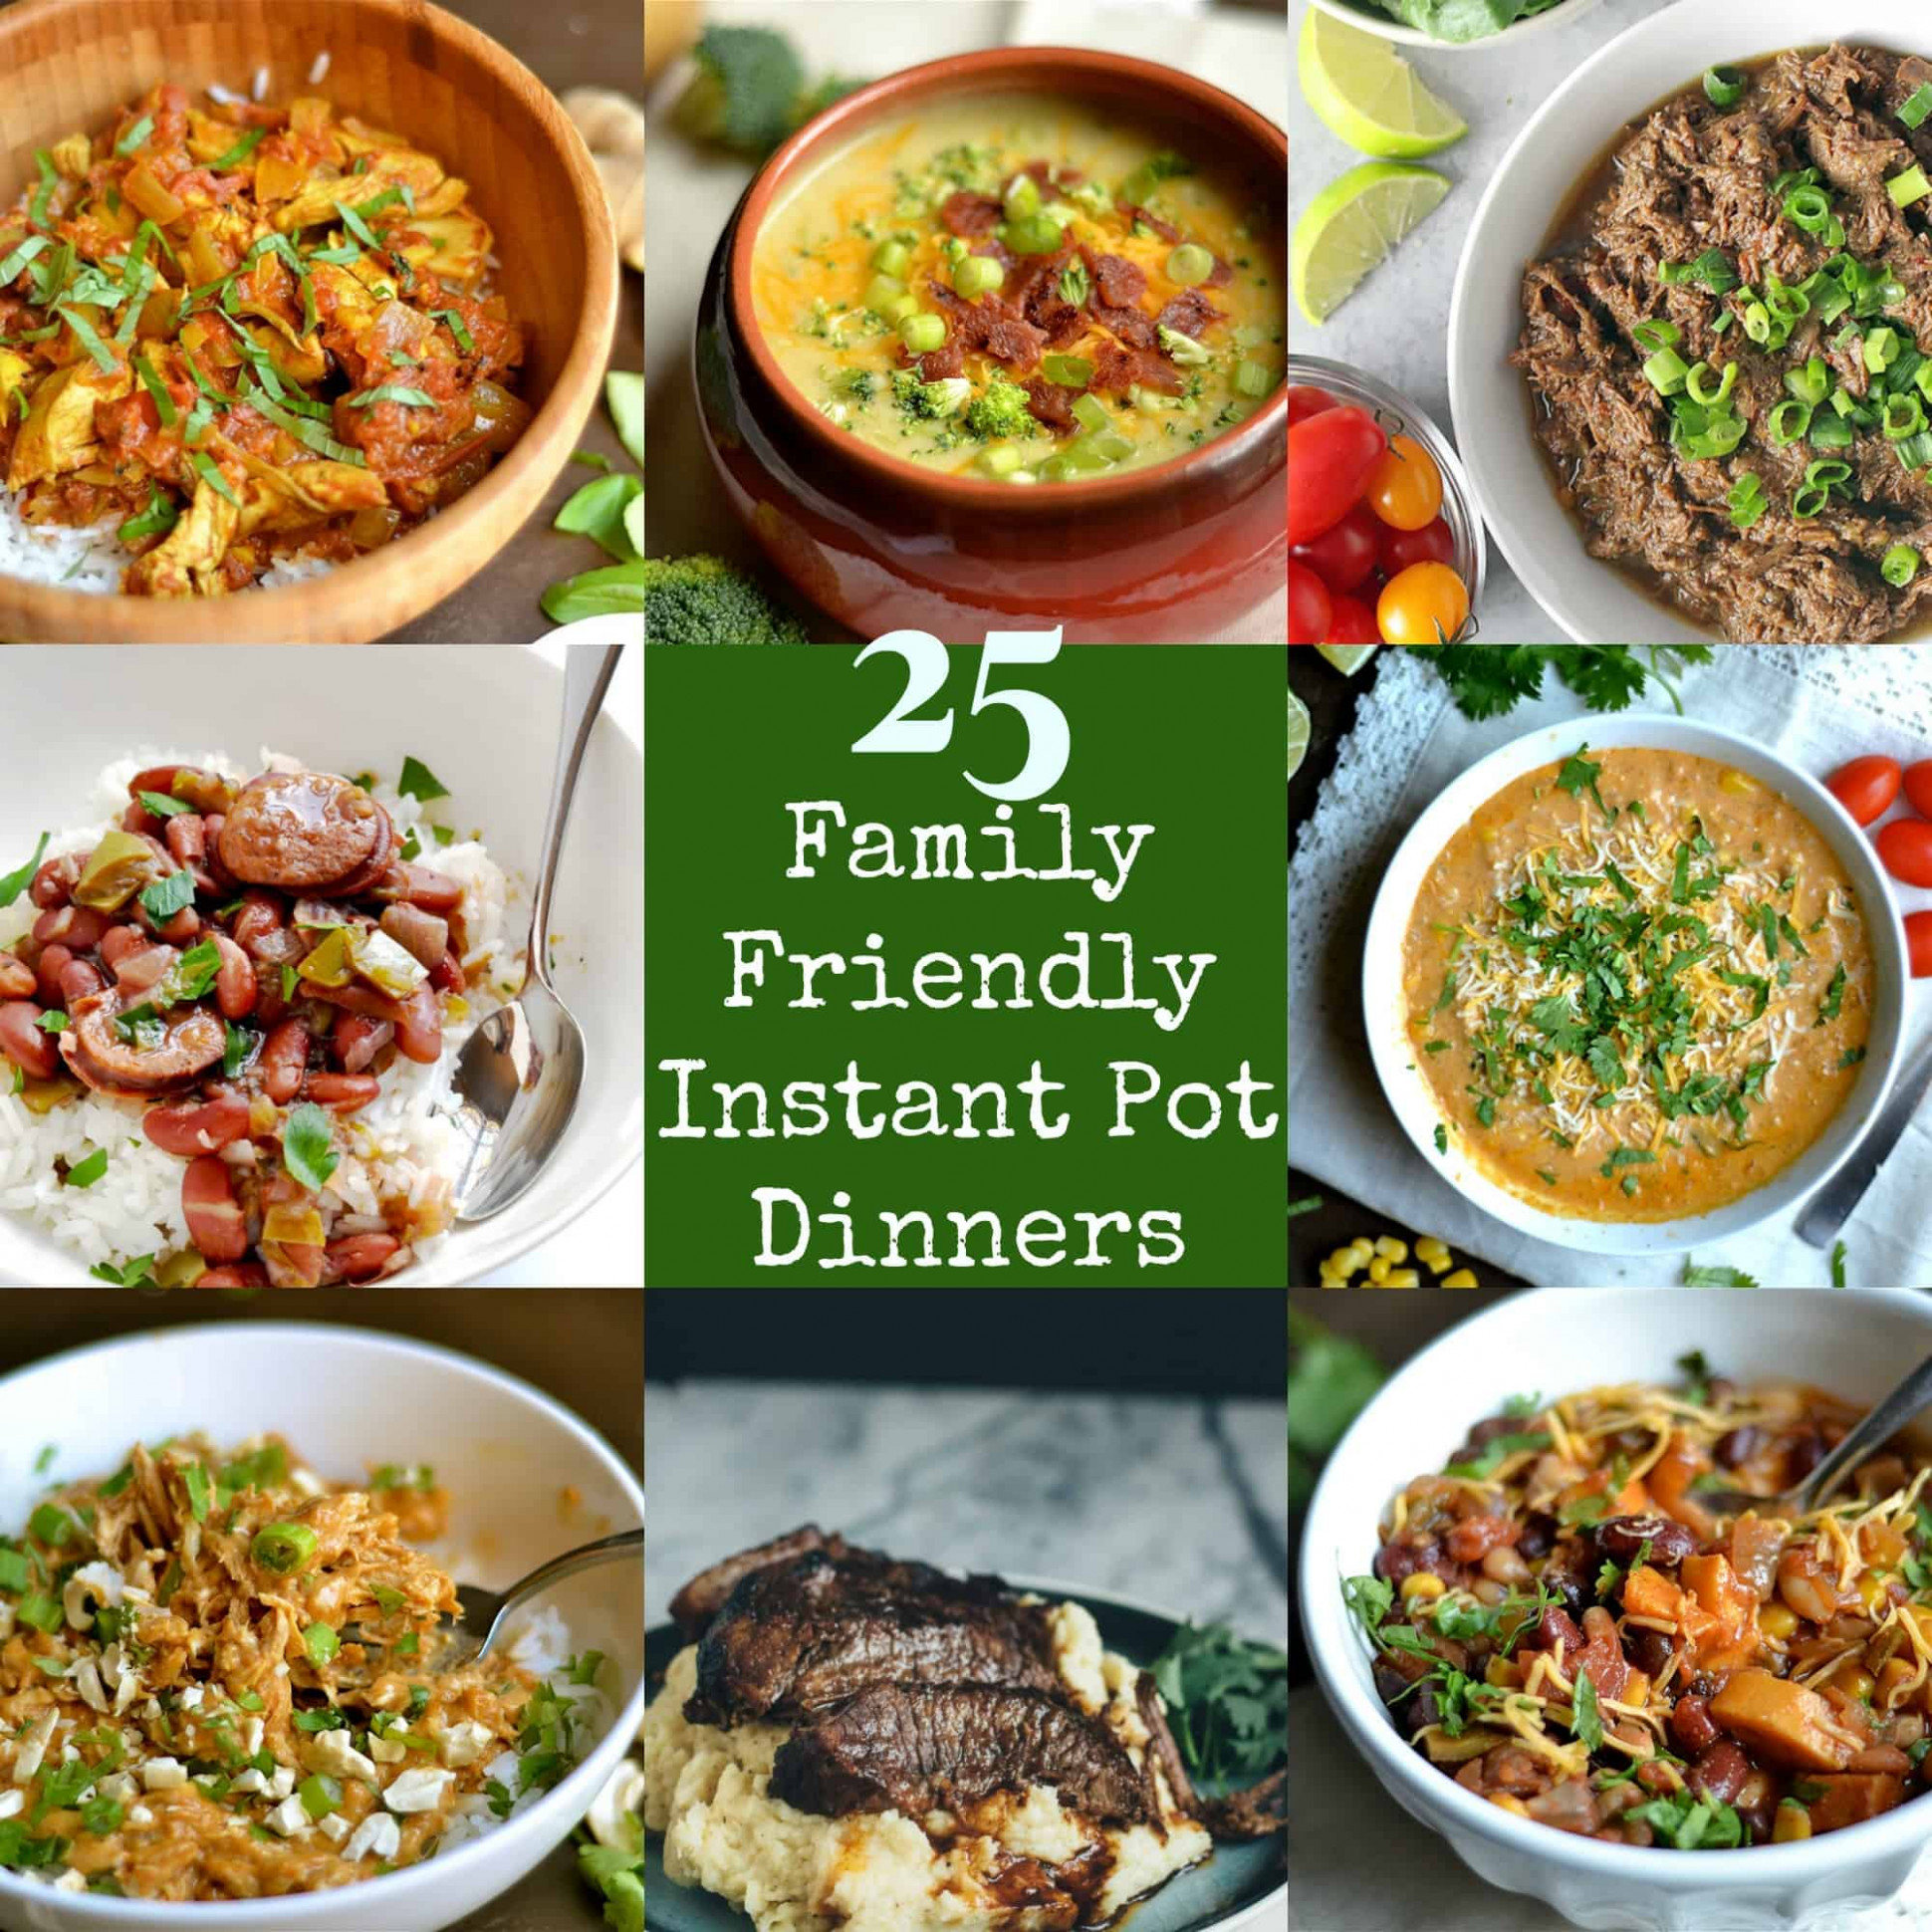 13 Family Friendly Instant Pot Dinners - Wholesomelicious - recipes dinner kid friendly